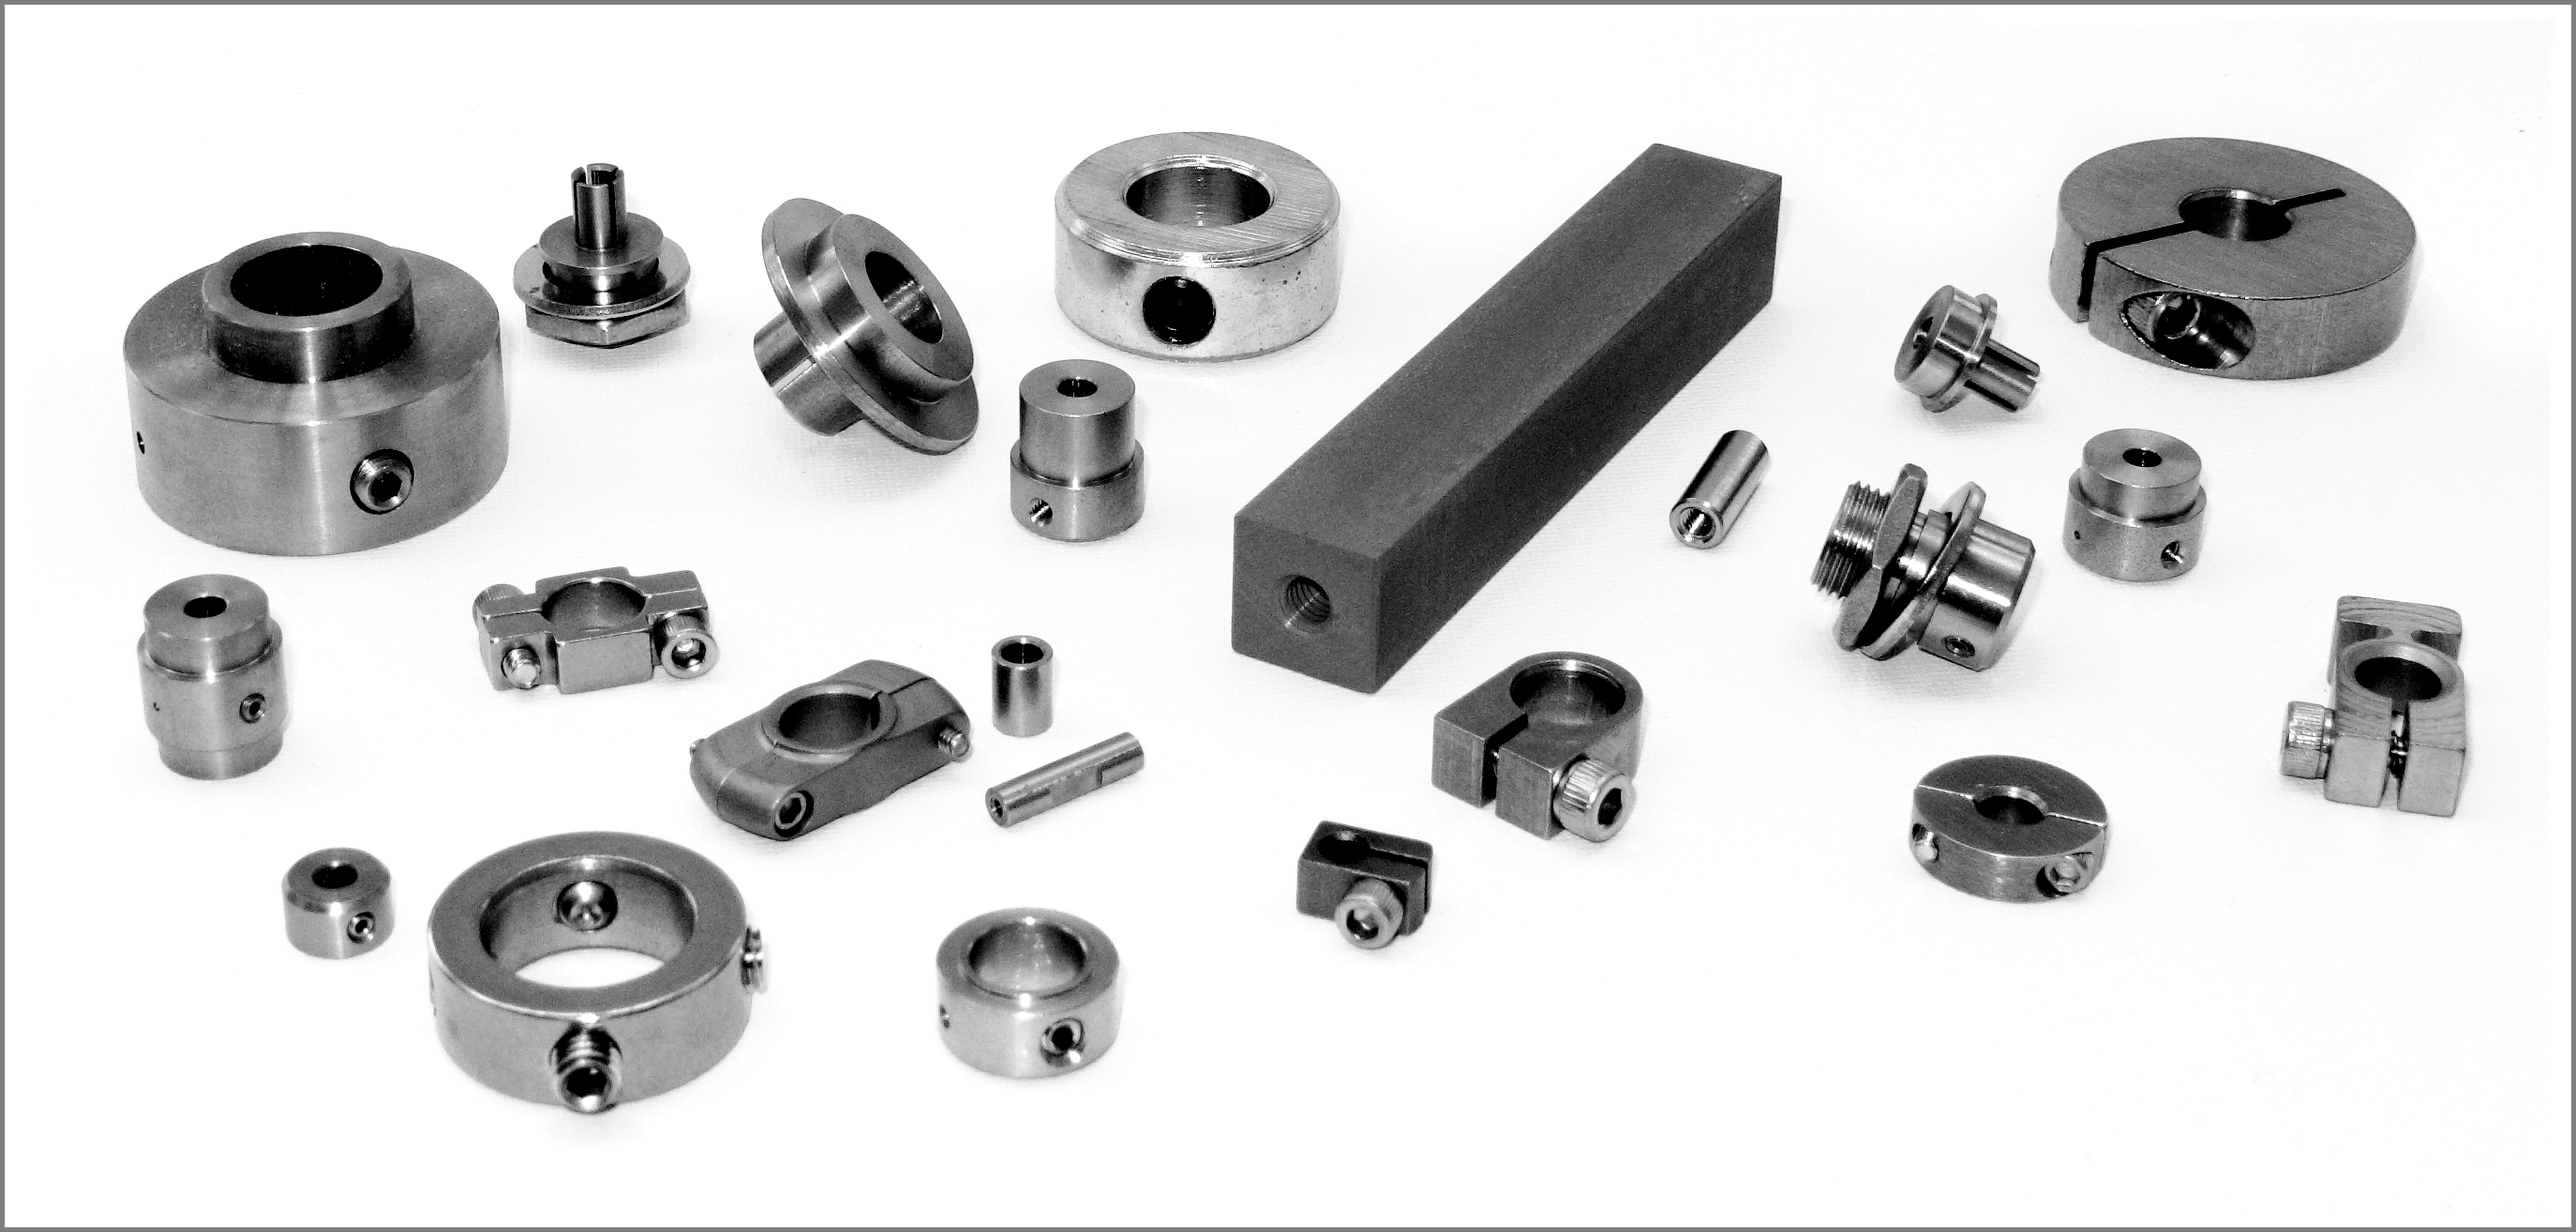 Component Mounting Accessories